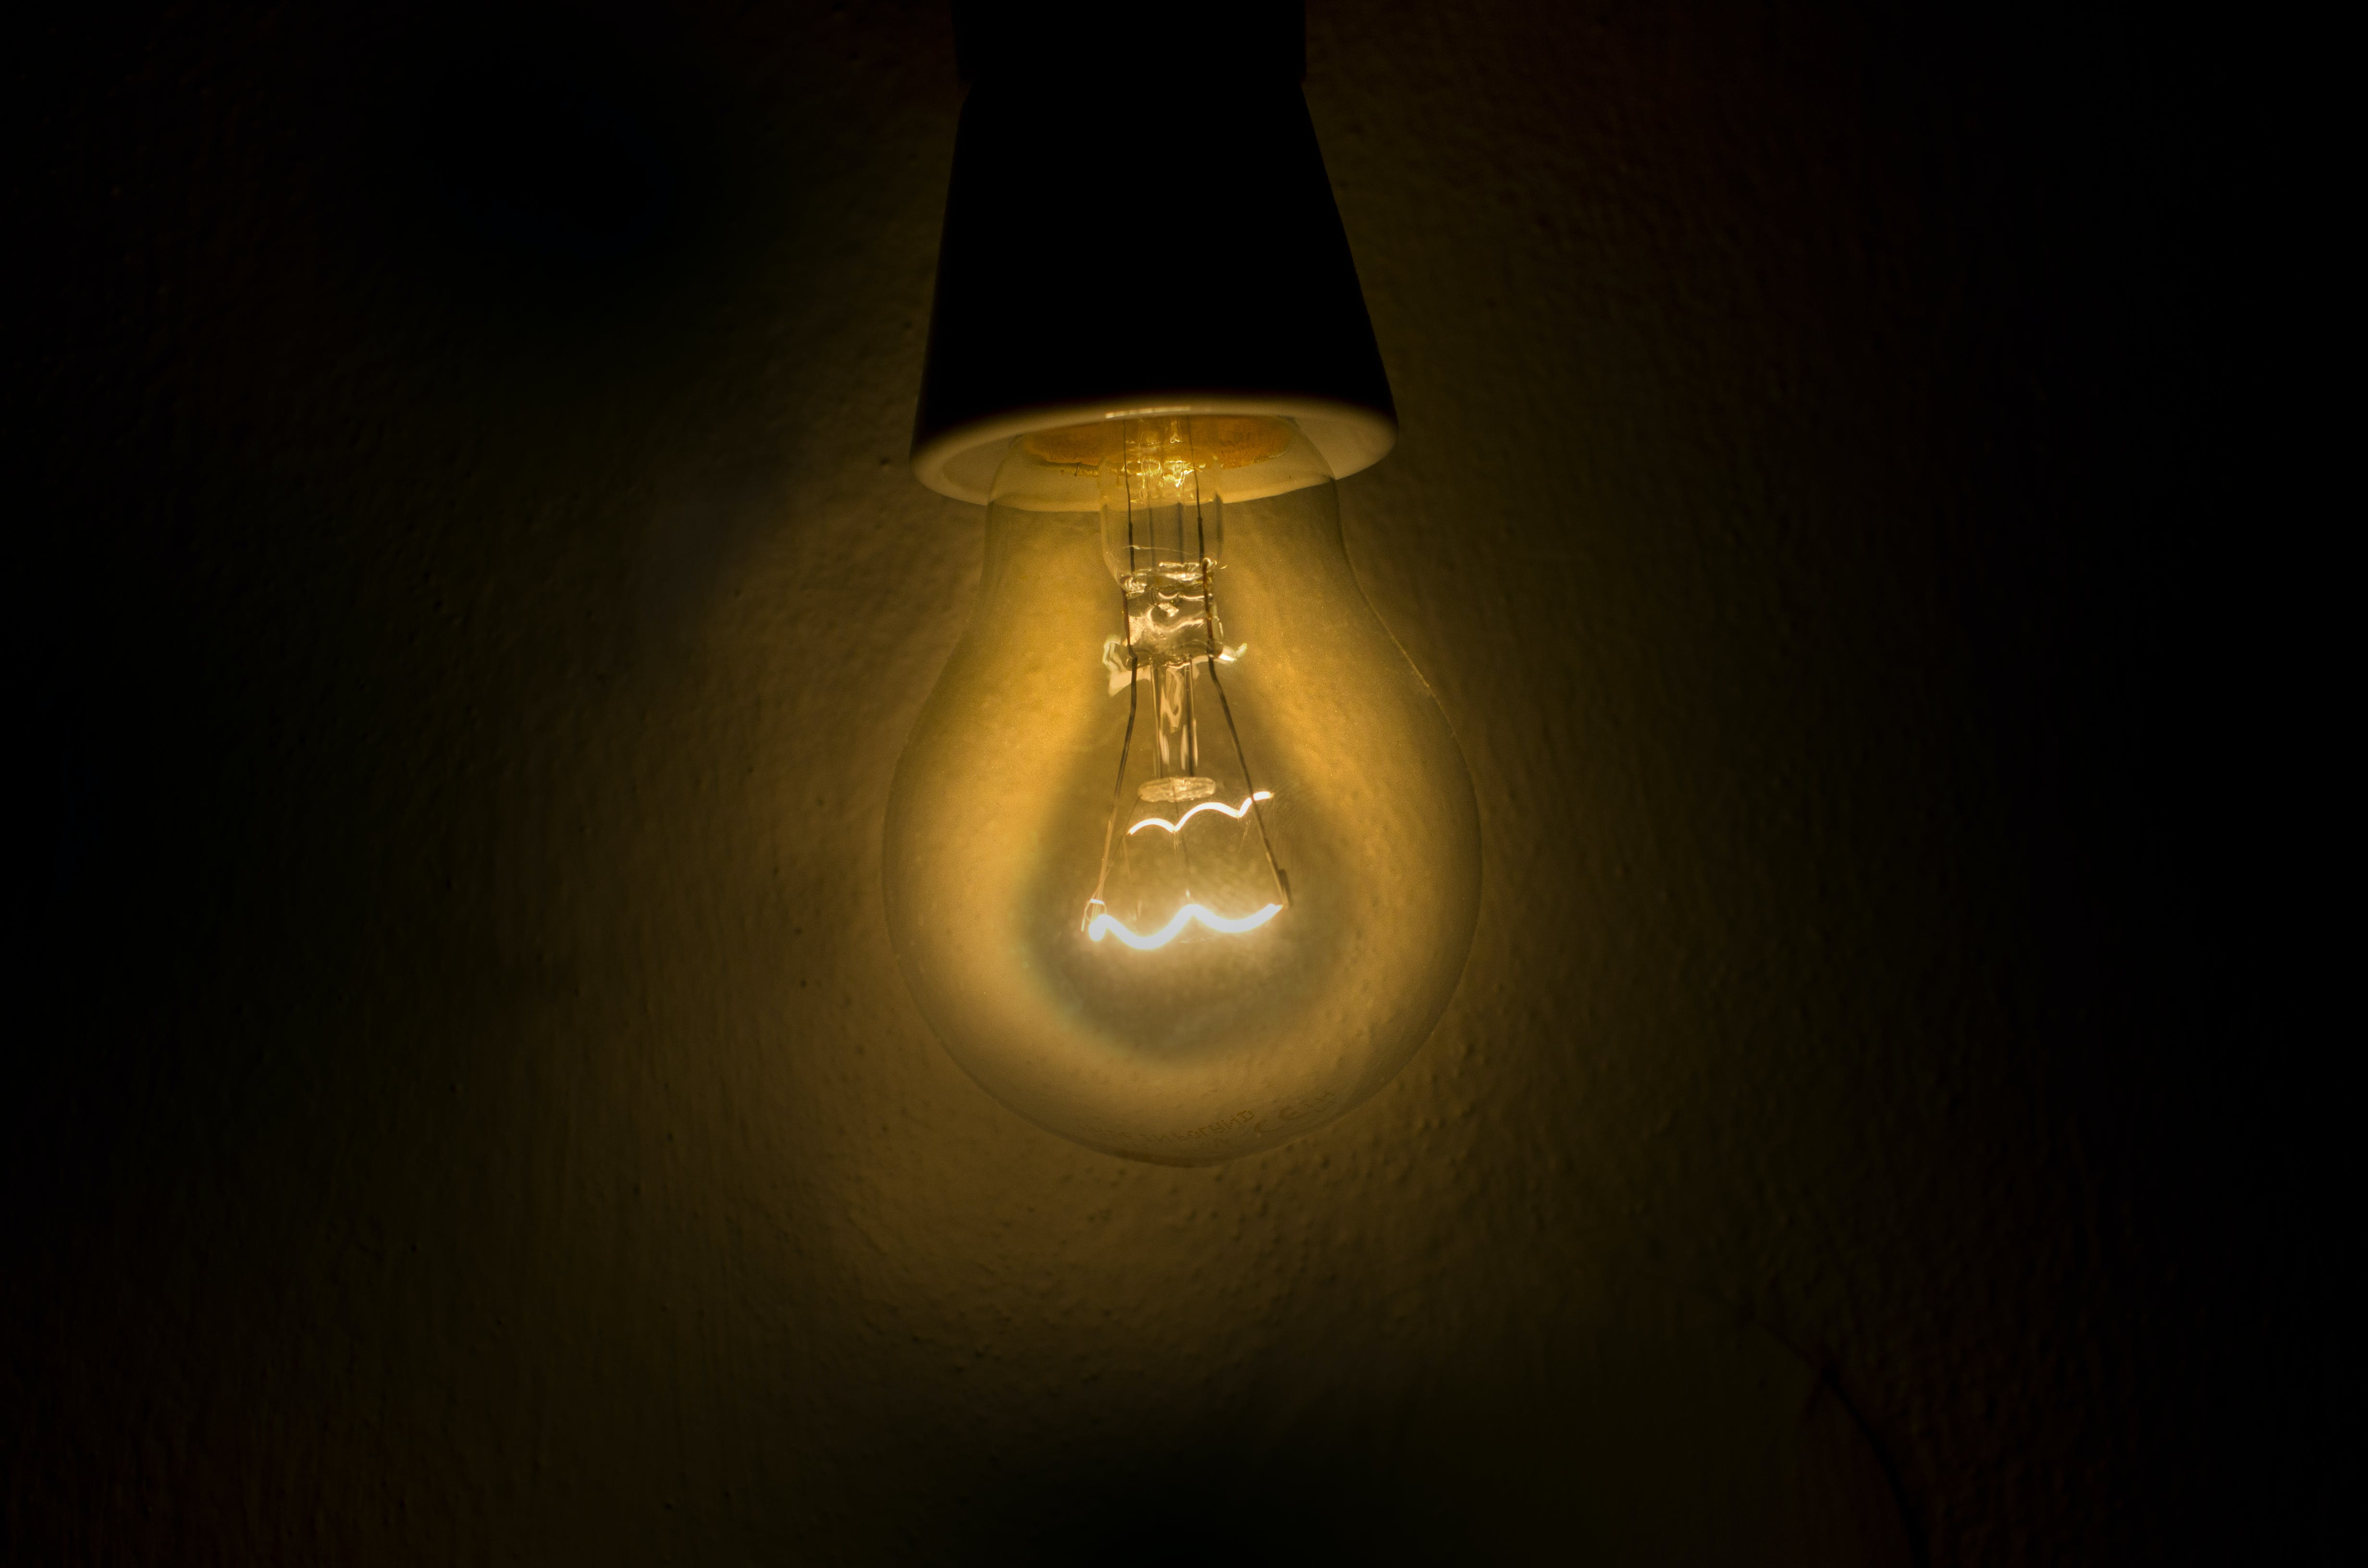 Free stock photo of light, dark, technology, lamp